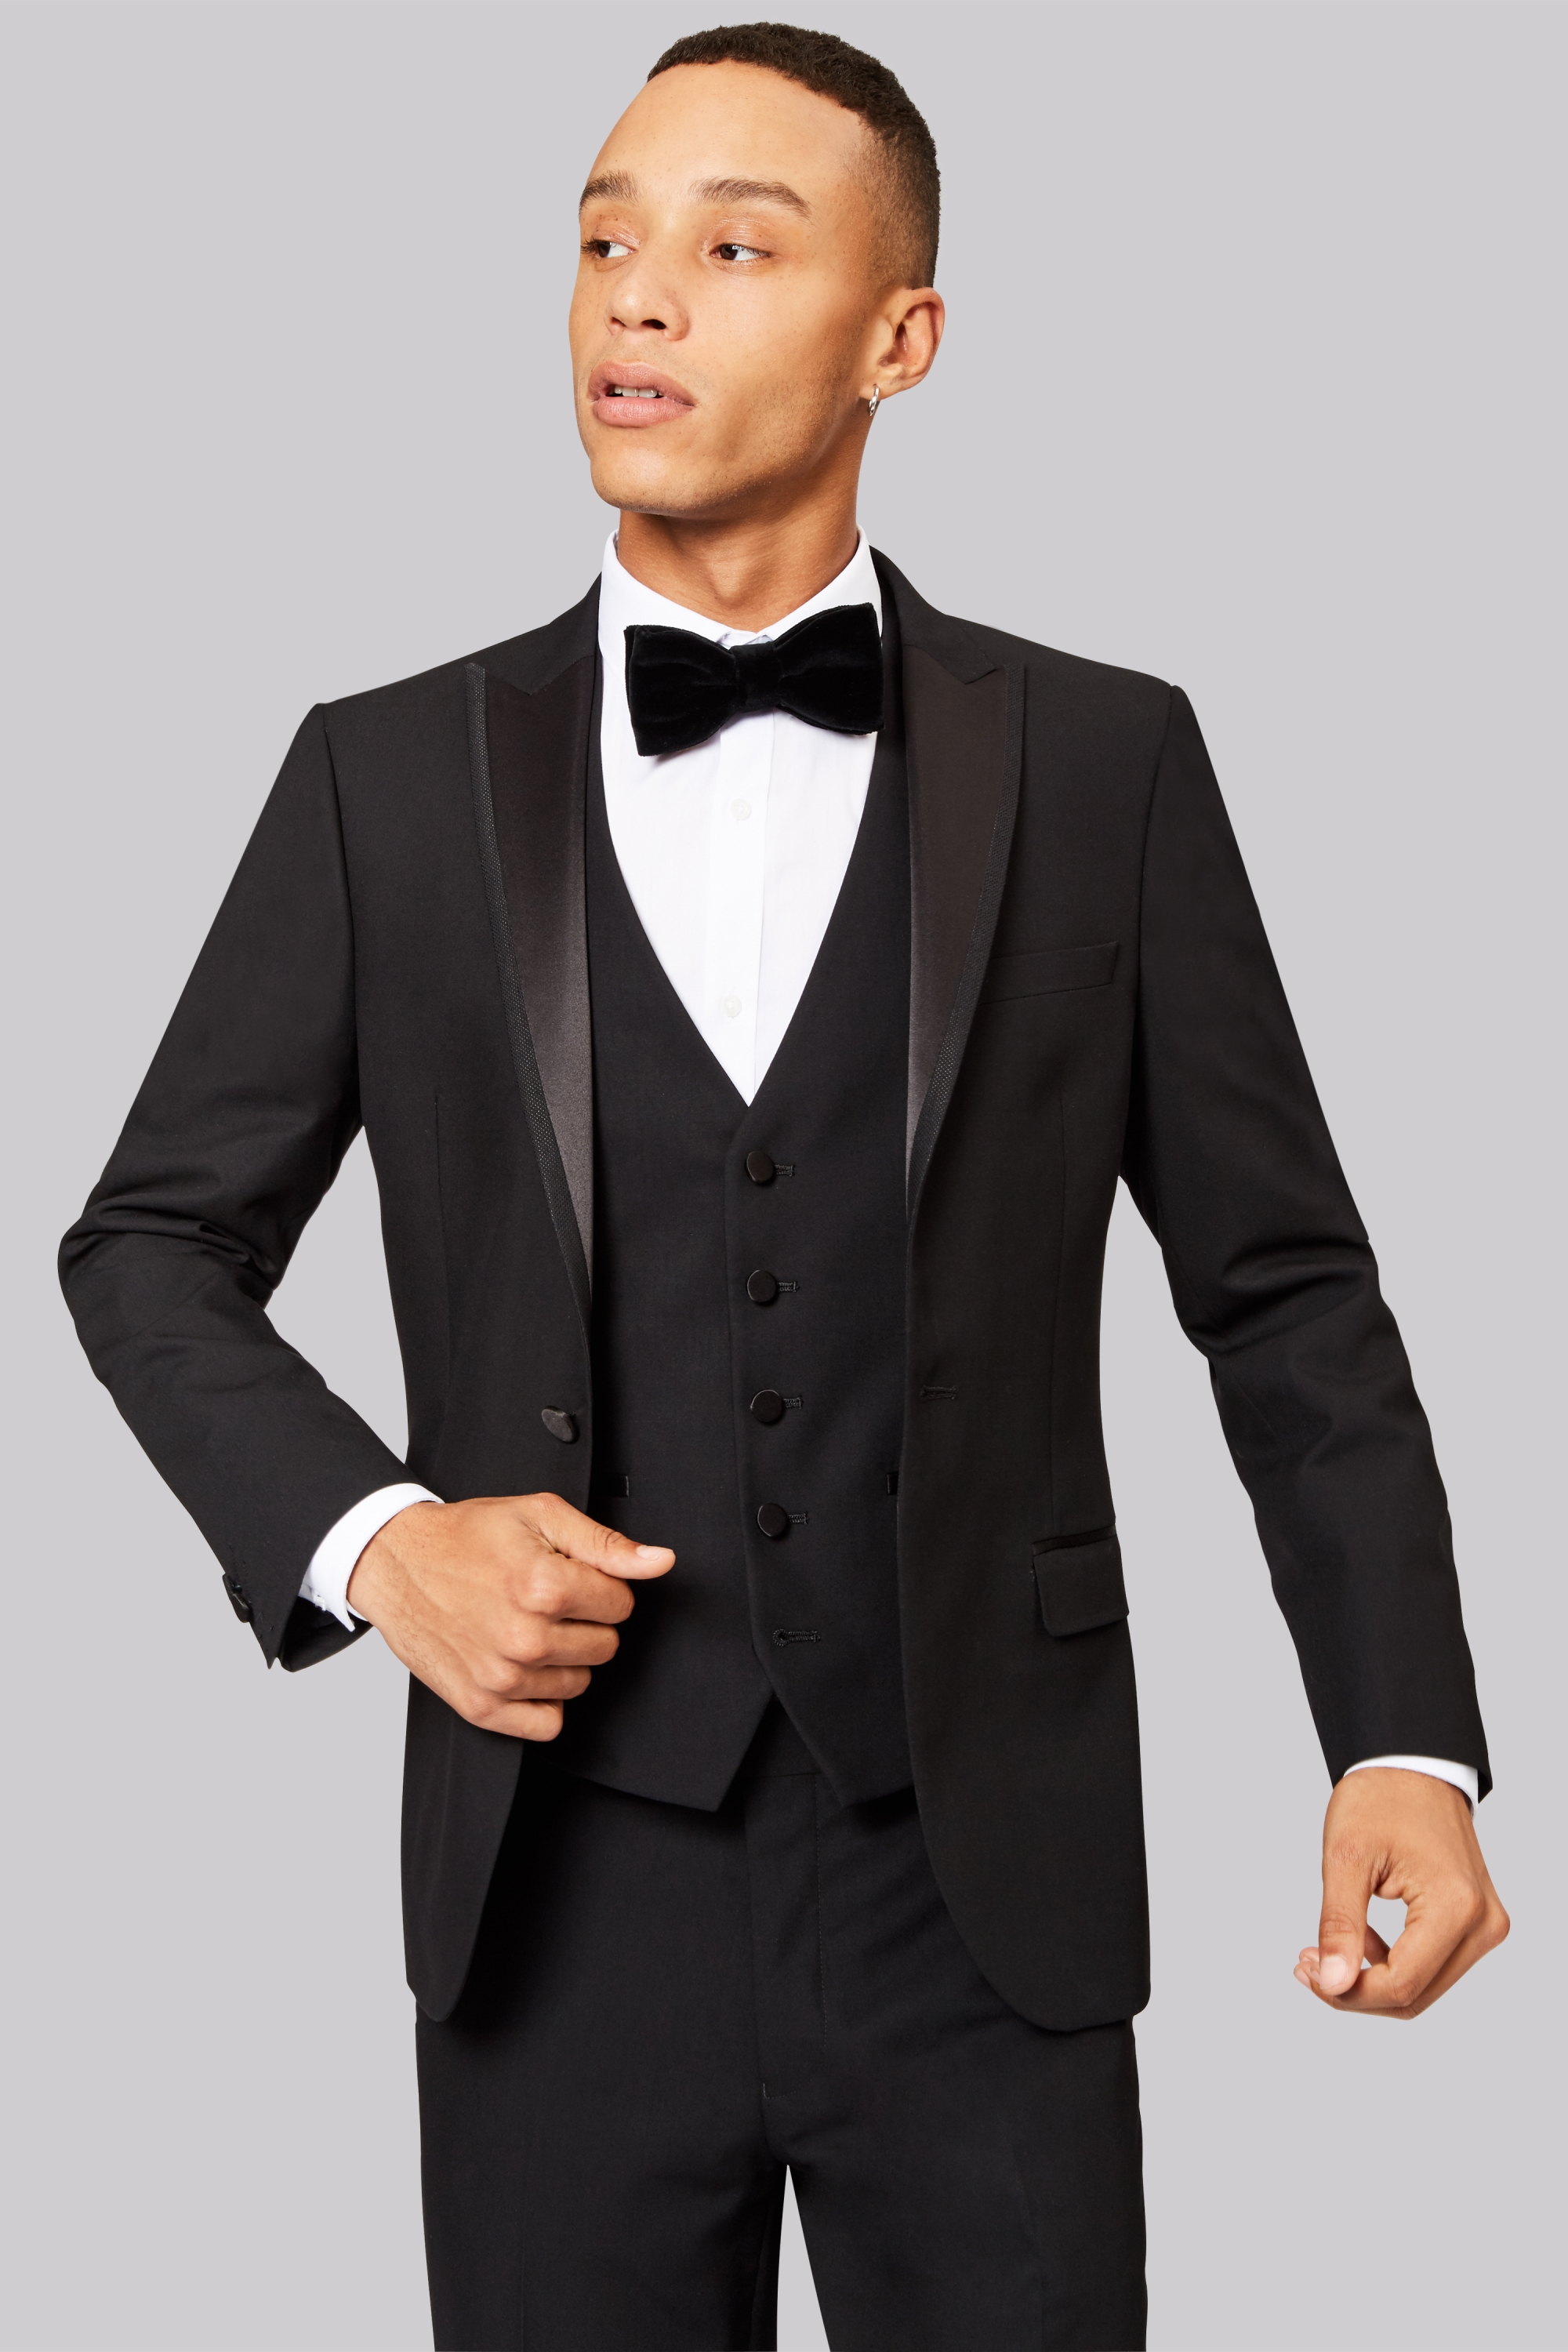 A suit is a set of garments made from same cloth and consists of a jacket and trousers. A suit is ideal for formal occasions and is mostly worn at work during the day. A tuxedo (or tux) is a form of dinner jacket, different from a formal suit and more appropriate for semi-formal evening events or black tie events.